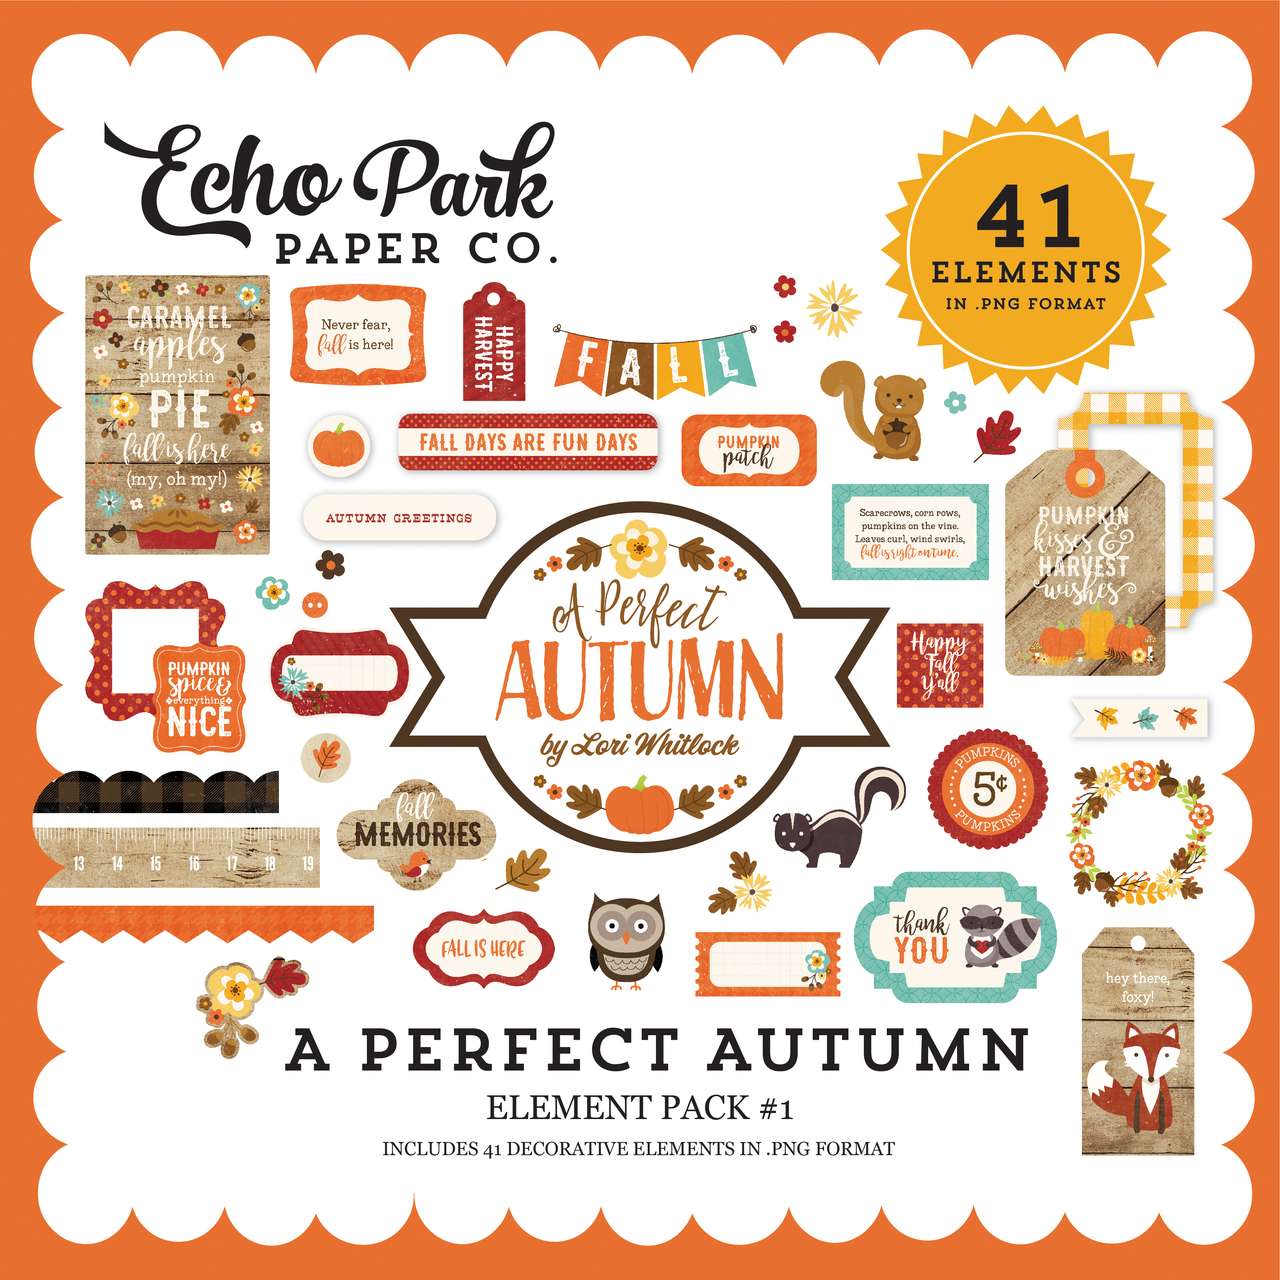 e2479d76f6 A Perfect Autumn Element Pack #1 - Snap Click Supply Co.